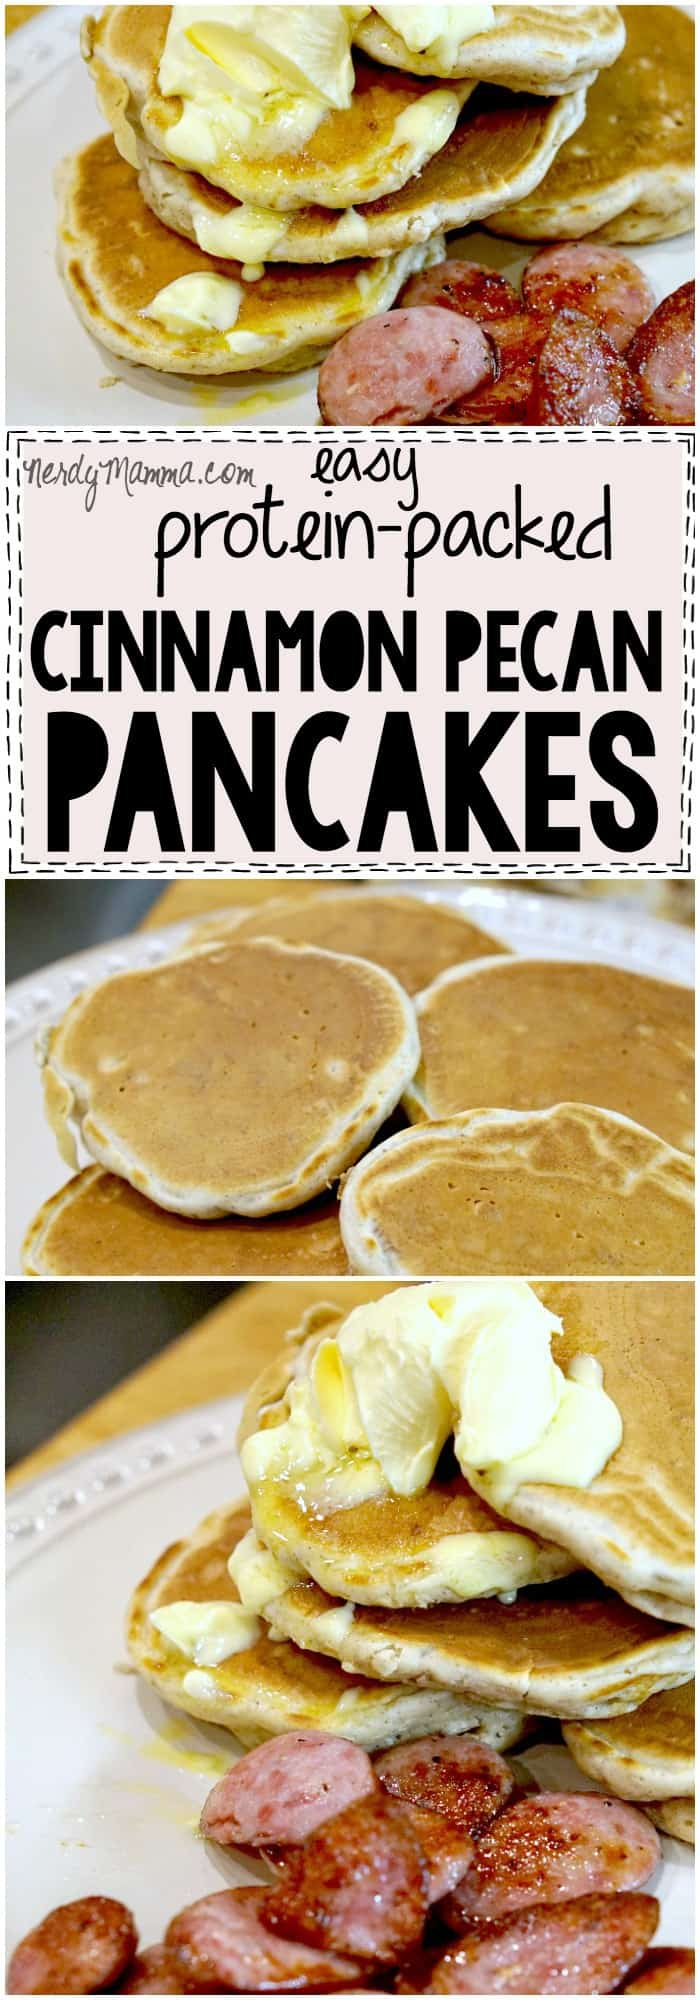 This recipe for Easy Protein-Packed Cinnamon Pecan Pancakes is SO EASY. And all that protein. I can't wait to try them!